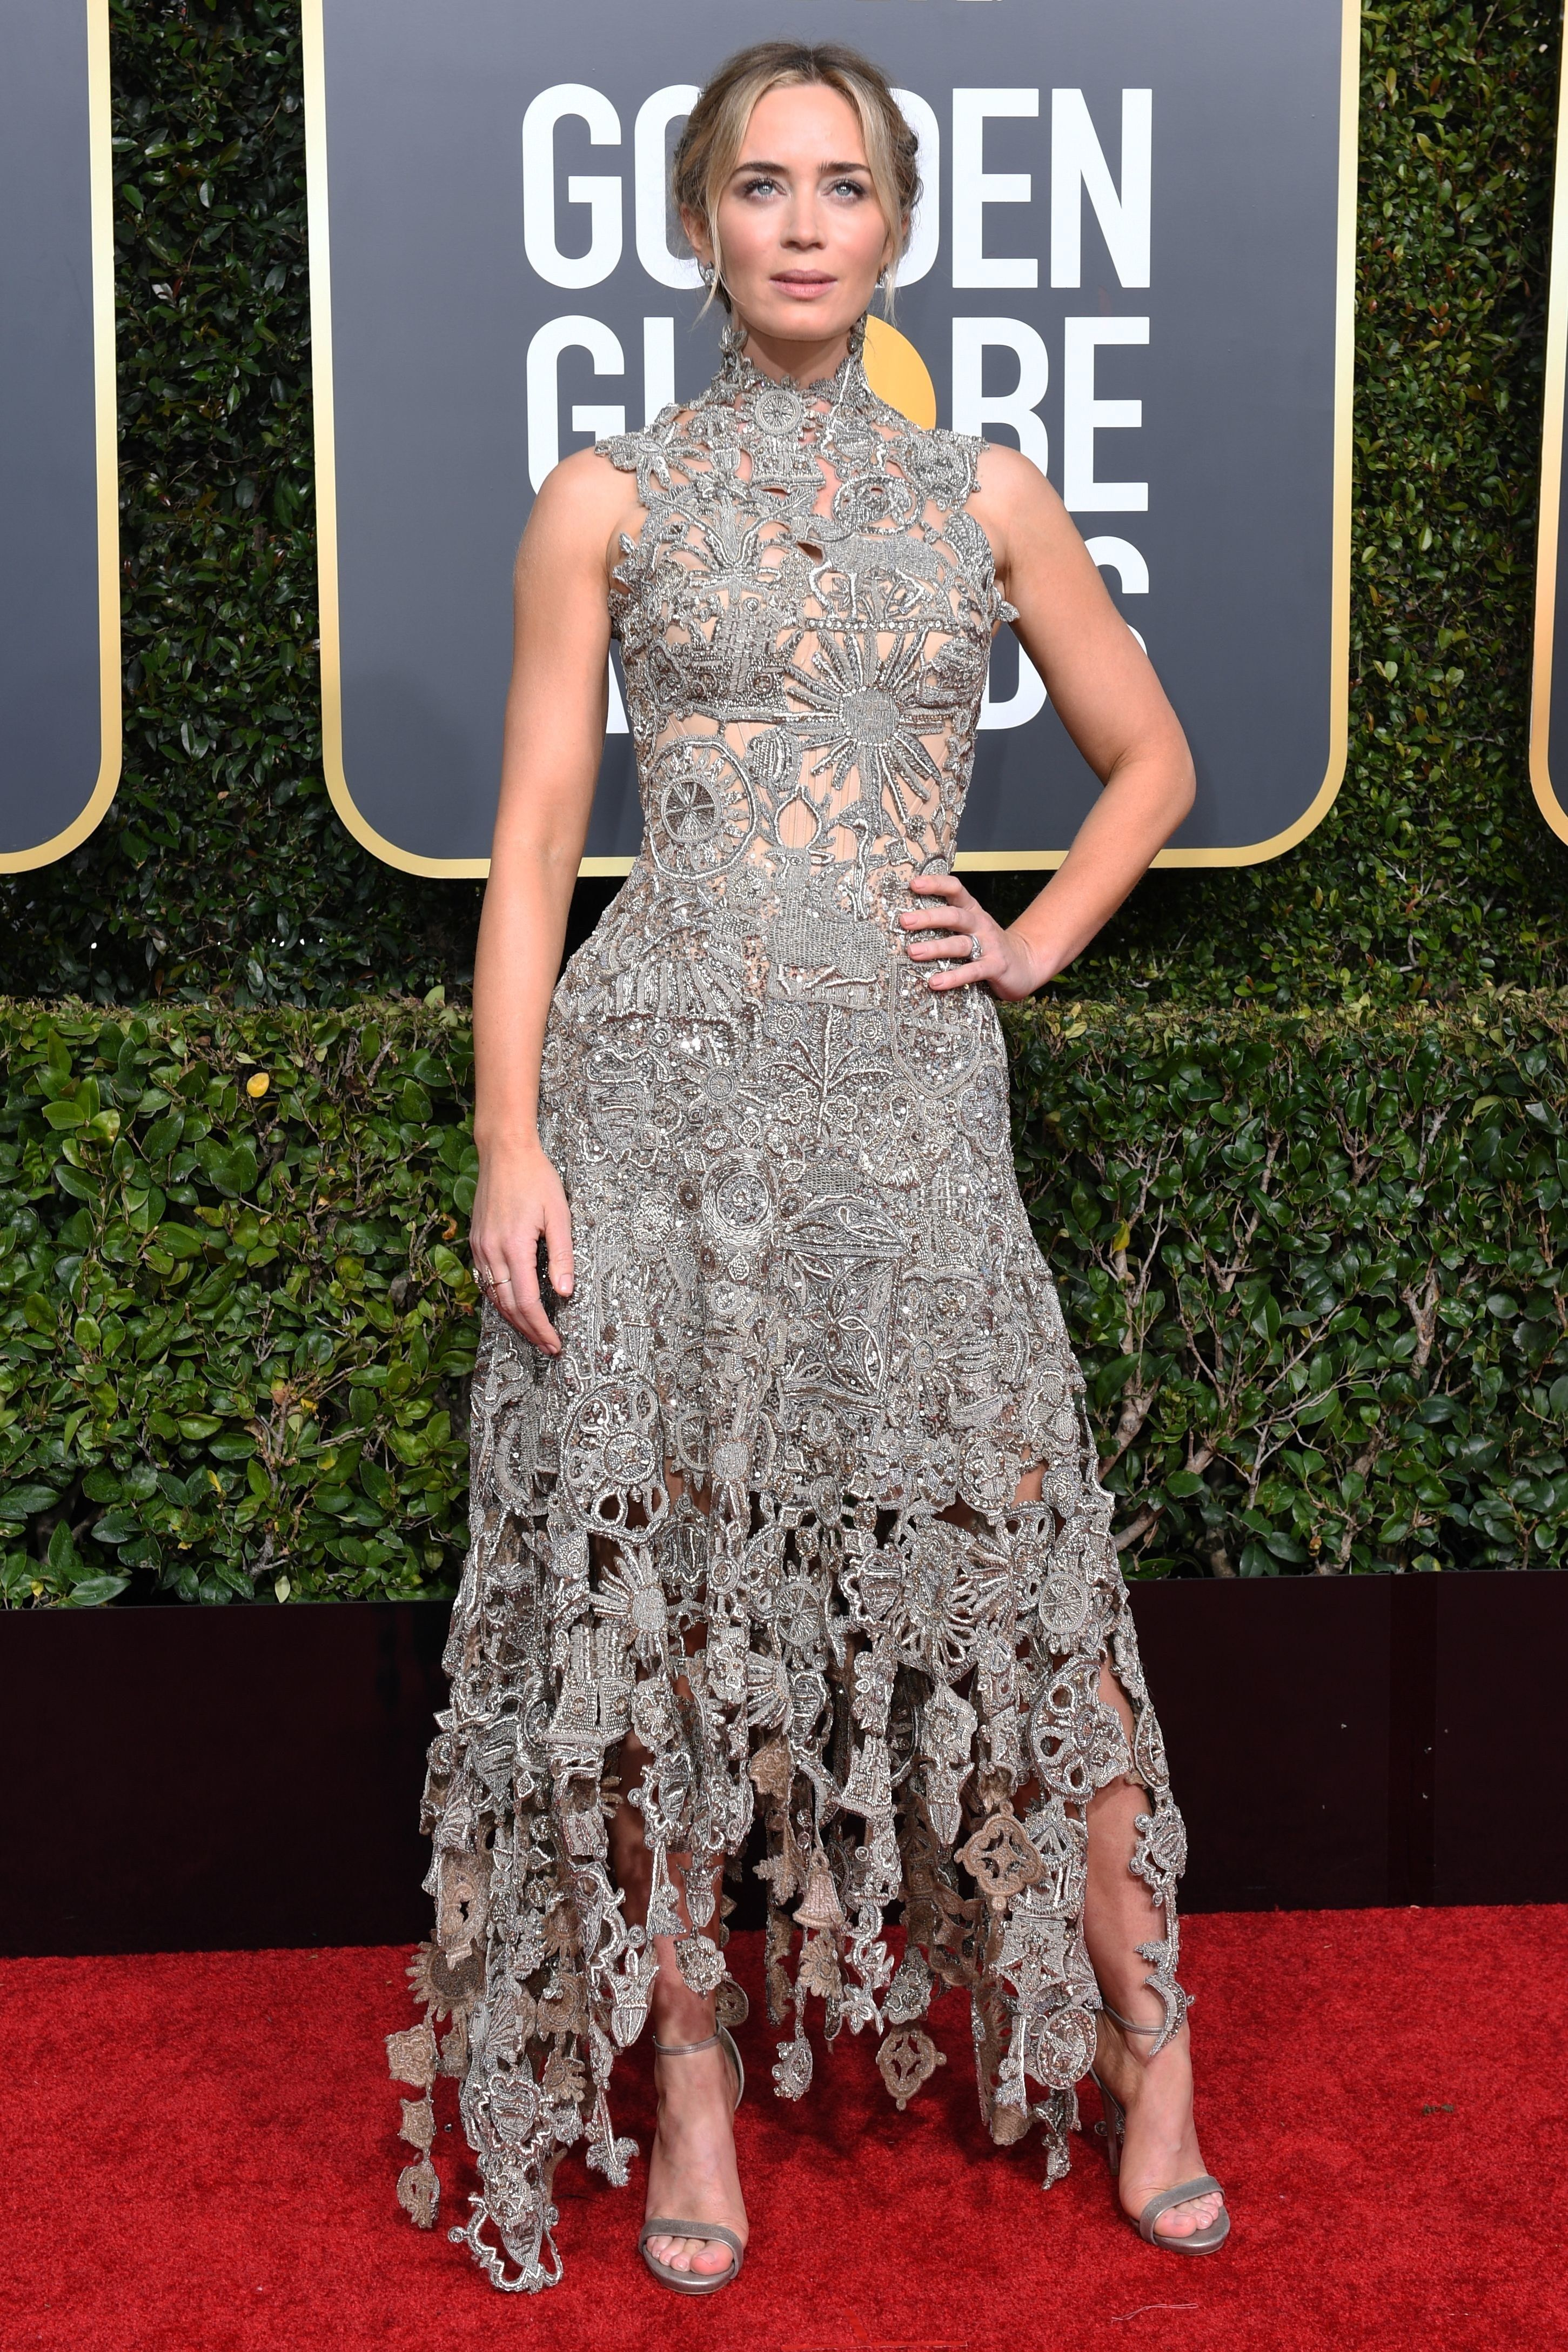 b5a70323d3 The Best Dressed Celebrities on the Golden Globes 2019 Red Carpet in ...